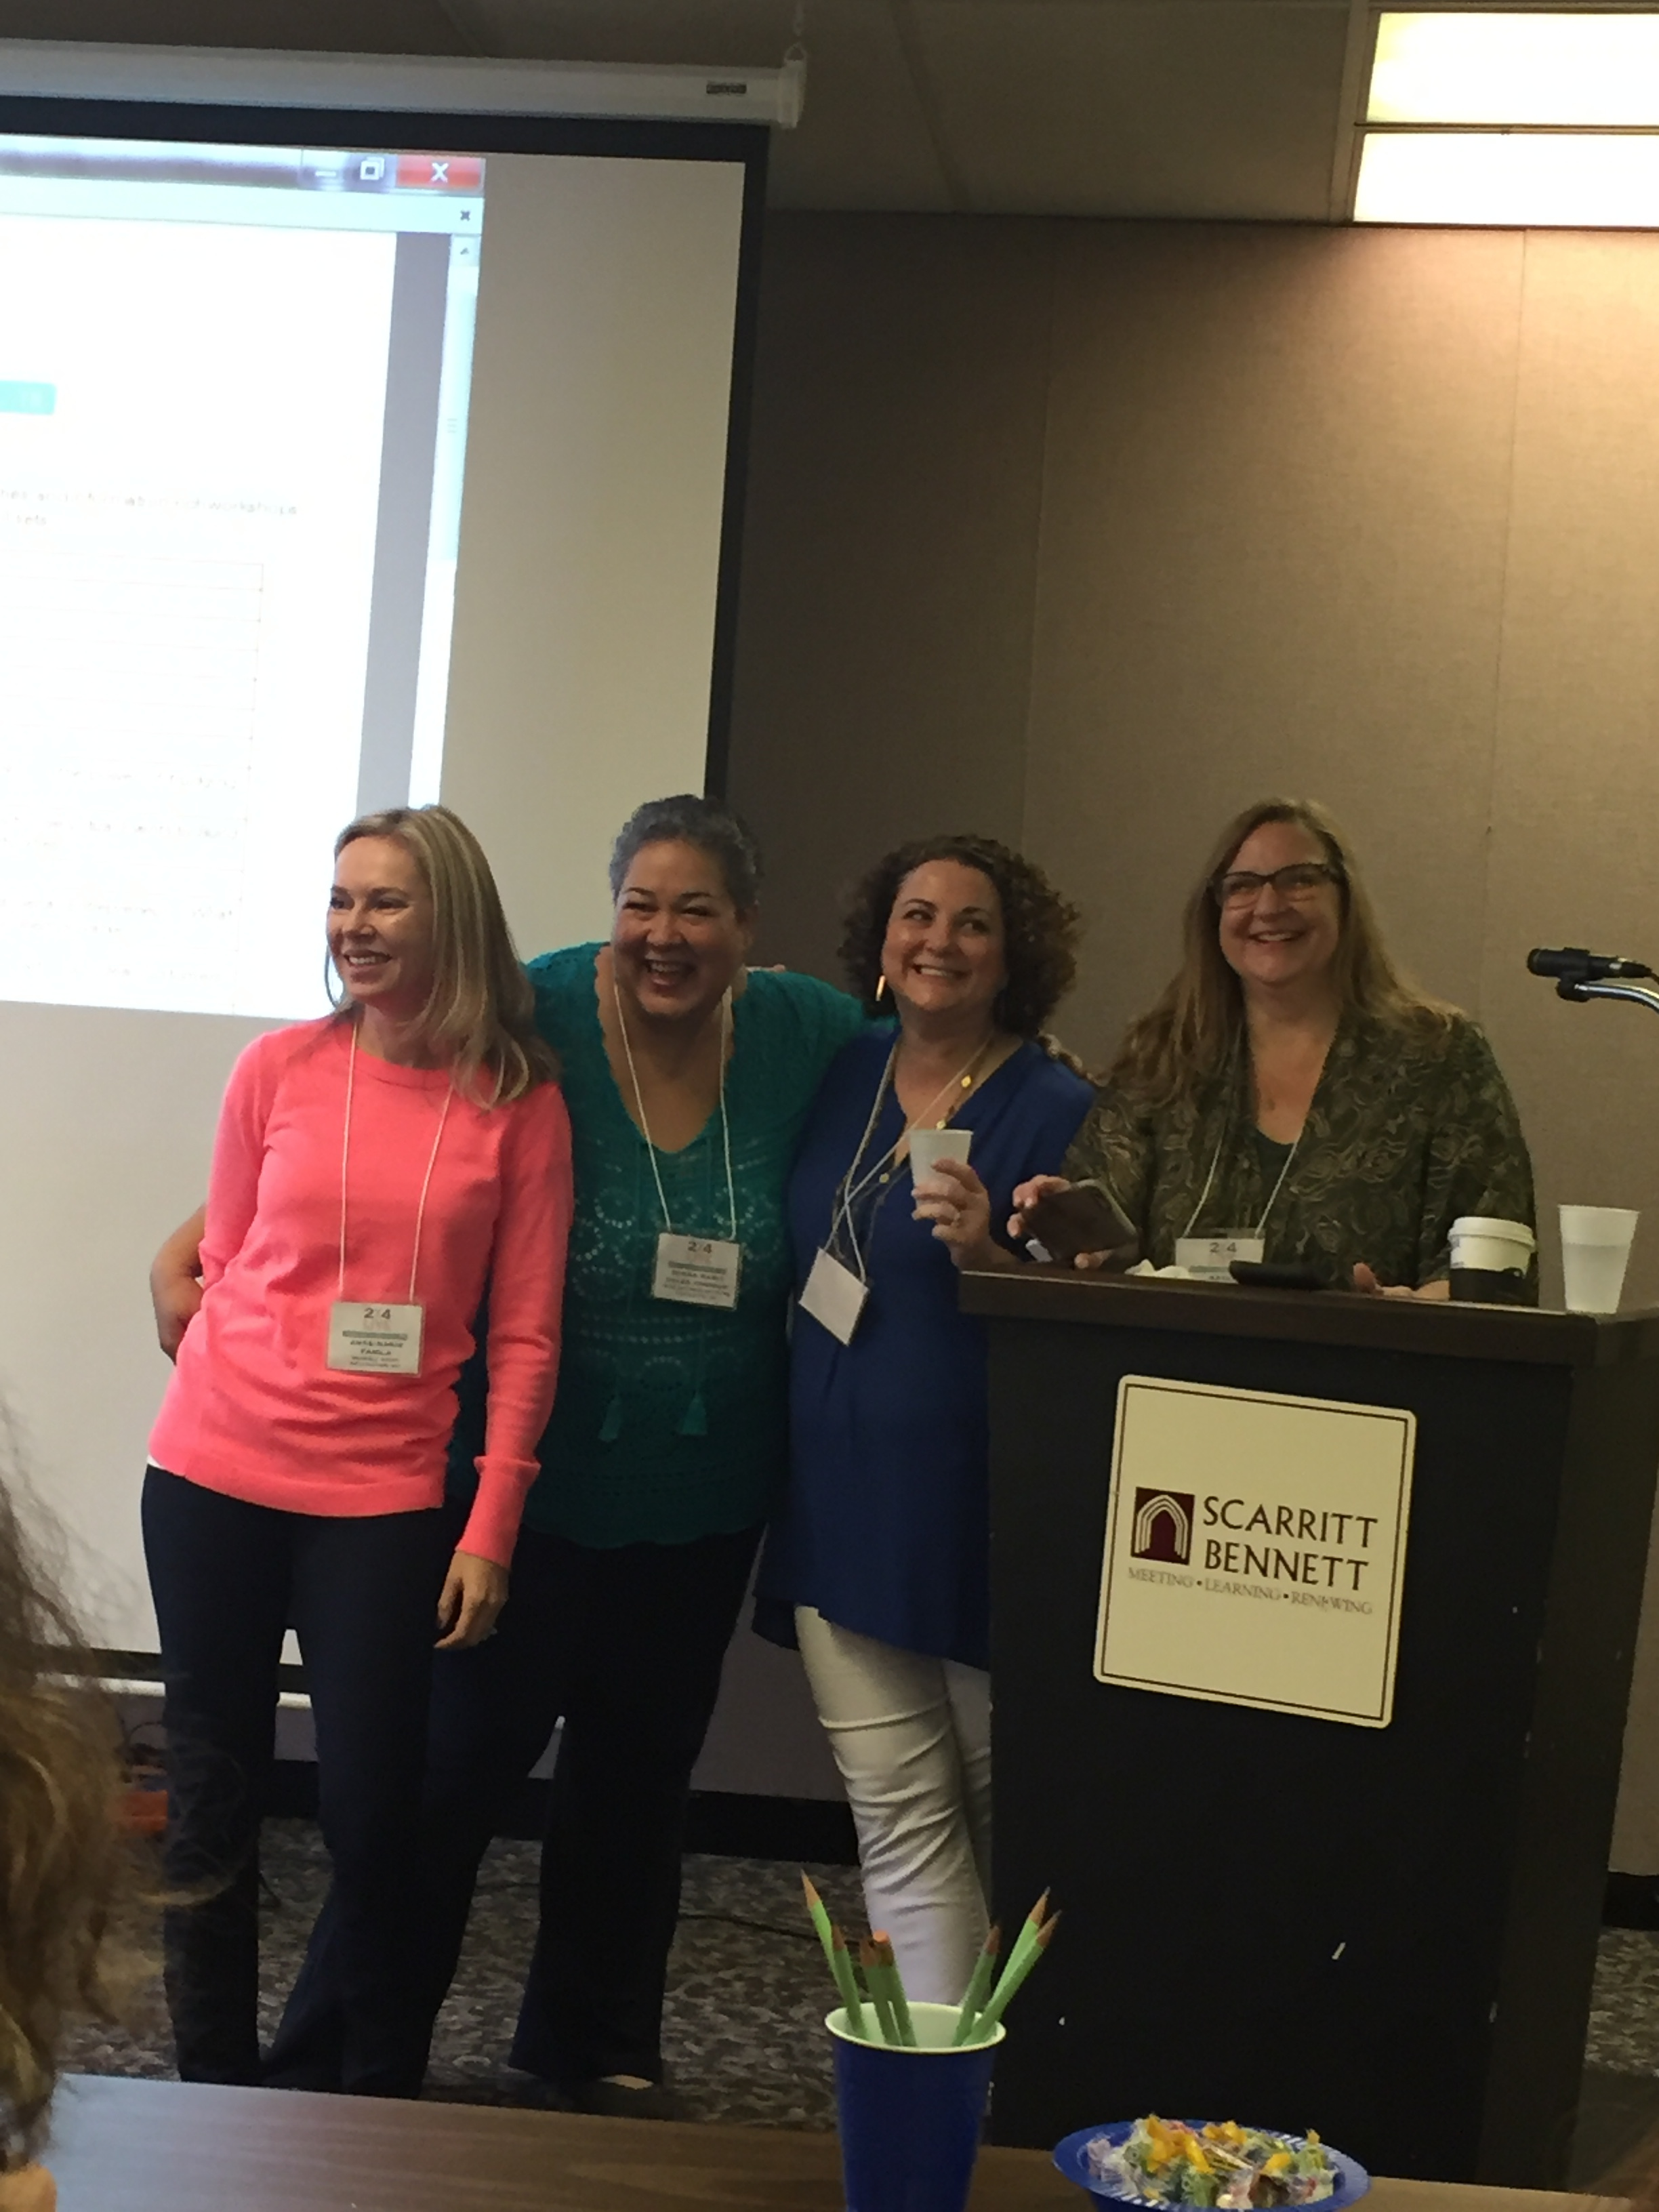 From left to right: Ann Marie from  Brambleberry , Donna Marie from  Indie Business Network , Lela from  Lucky Break Consulting , and Kayla from  Selah Press